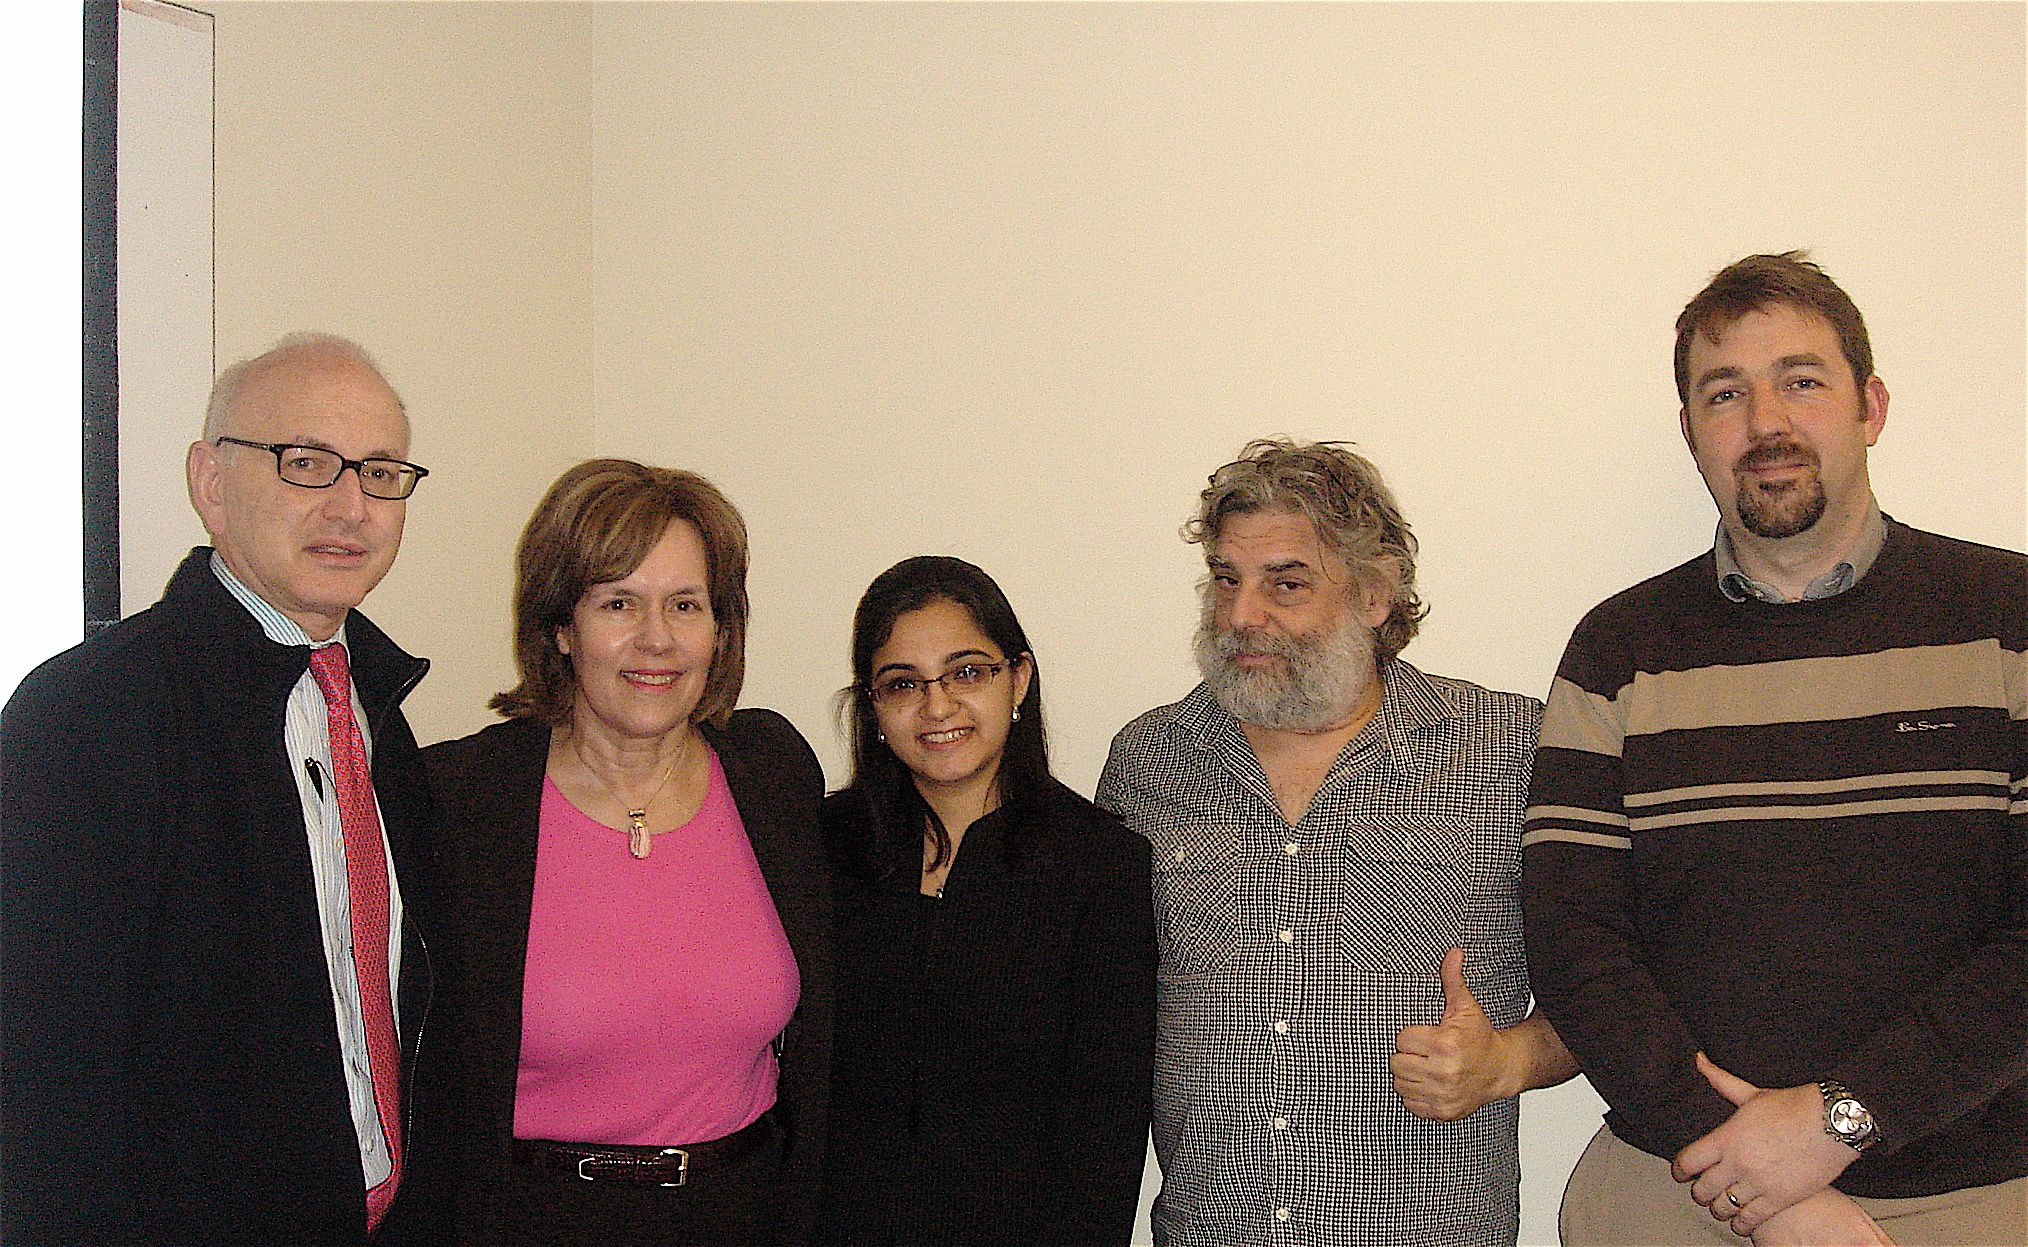 Vasundhra in the middle surrounded by (l to r) her thesis committee members Dr. Steve Nimer; Dr. Lorraine Gudas, Vasundhra's thesis advisor; Dr. Steve Gross; and Dr. Geoff Abbott.